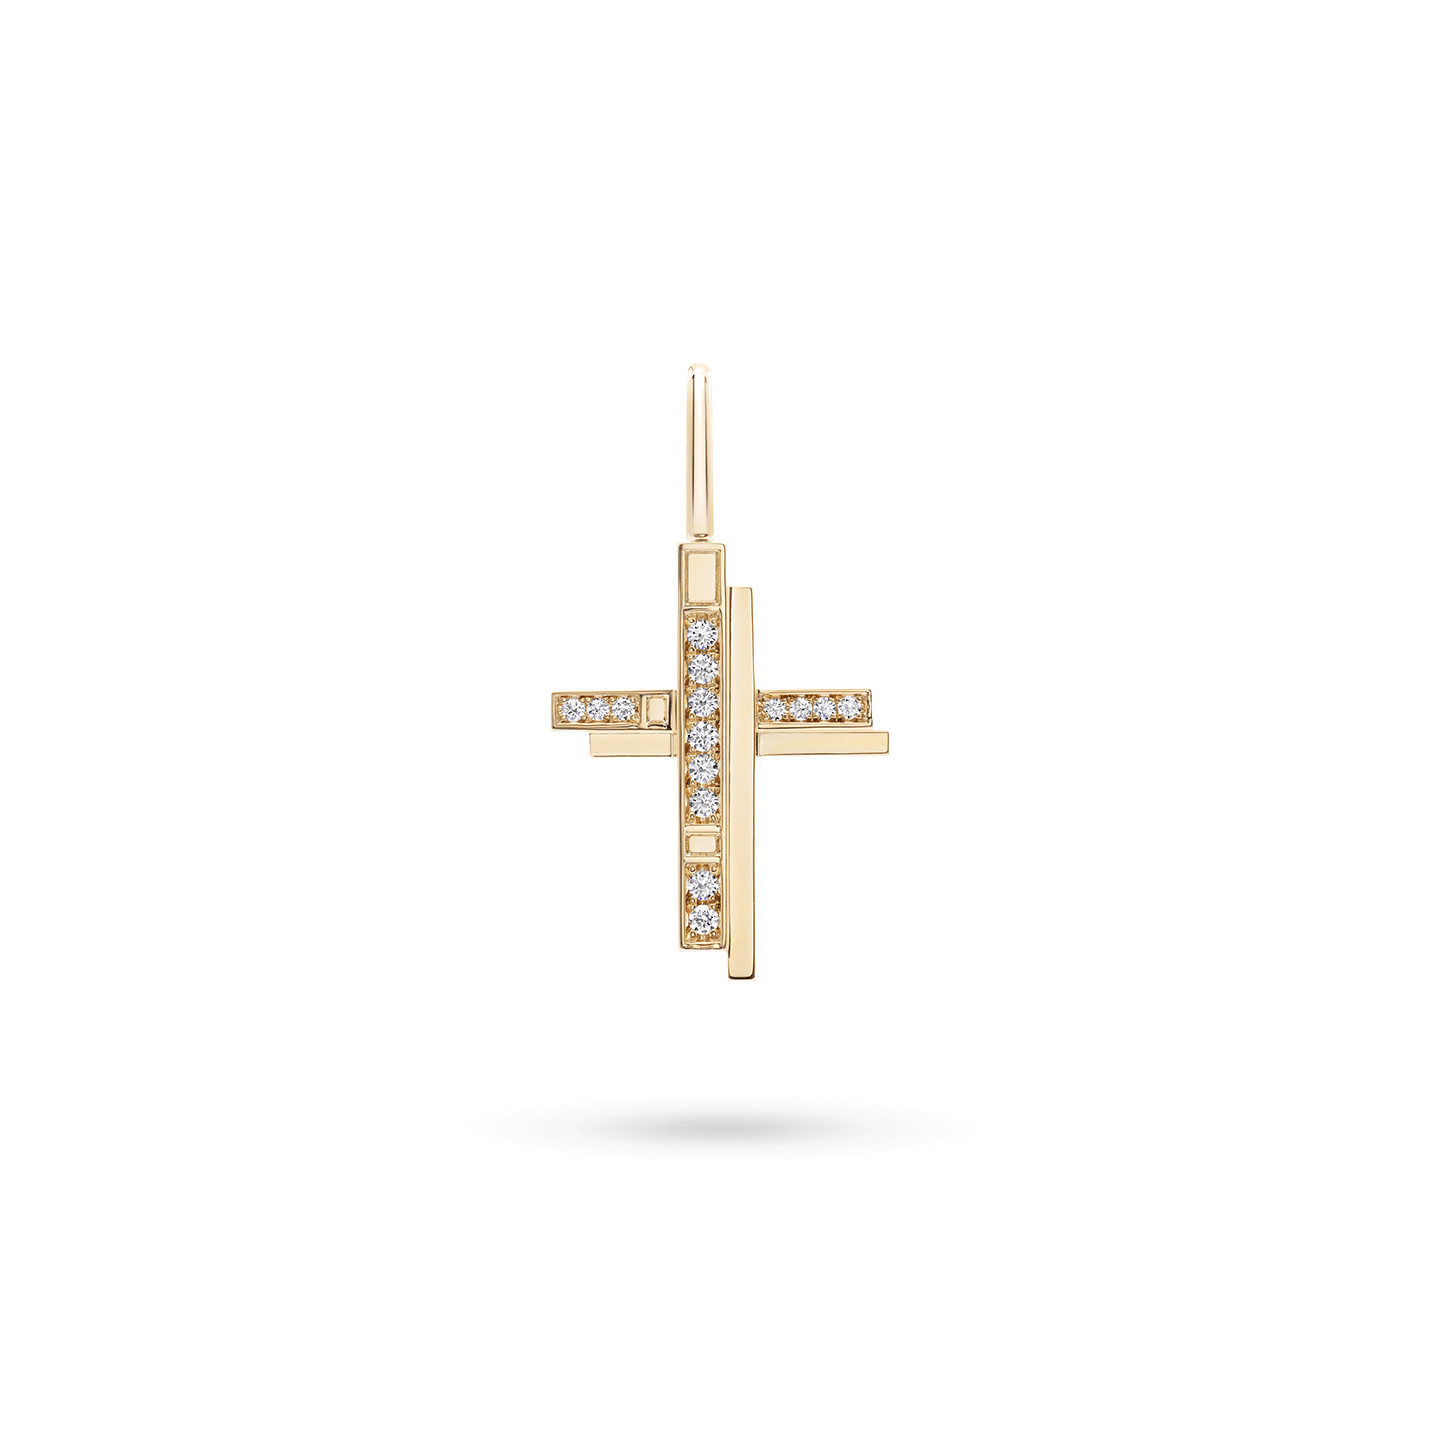 Traffic Cross Charm in Yellow Gold, Product Image 1